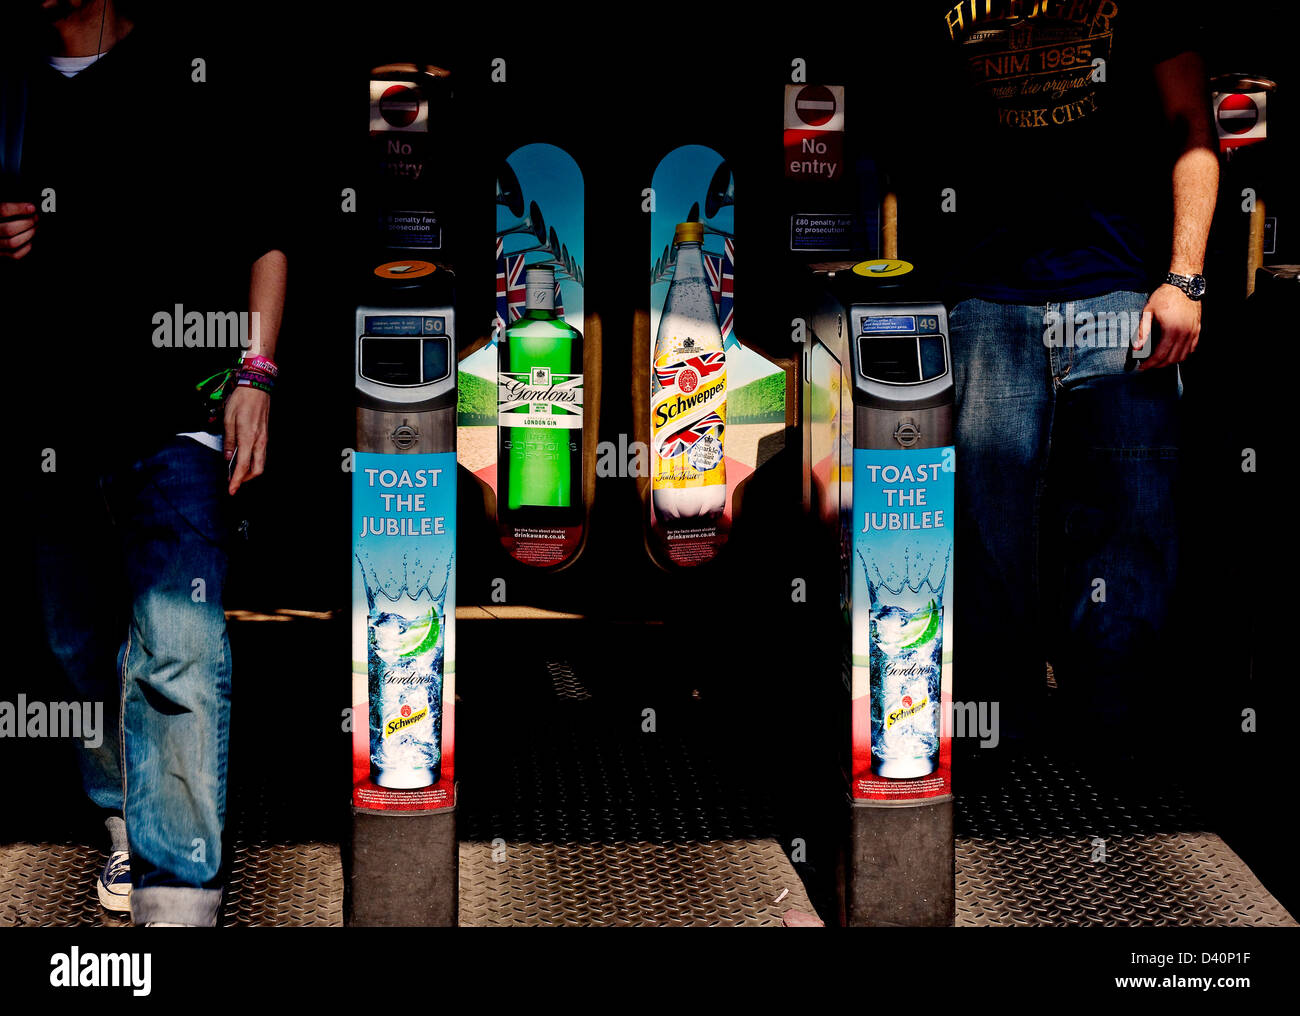 Tube station exit Camden town Toast the jubilee adverts on ticket barrier - Stock Image